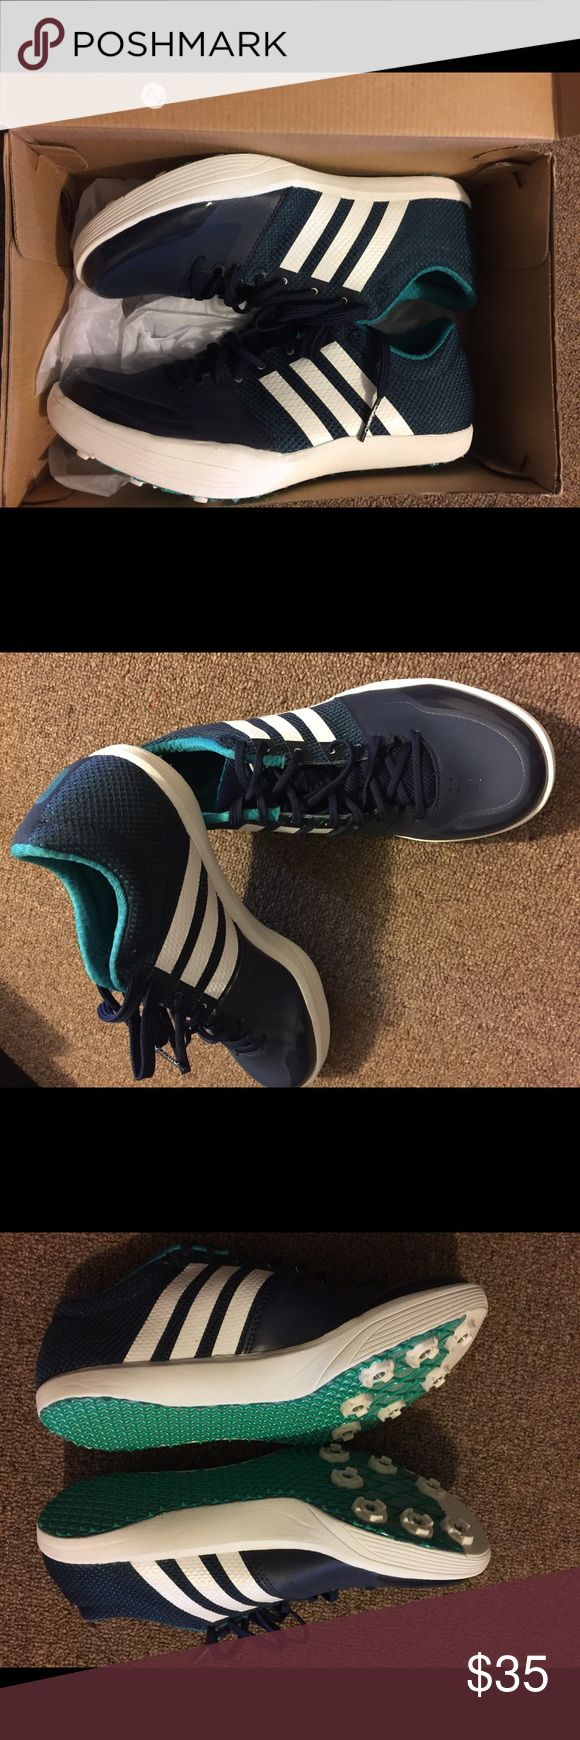 Long Jump Spikes Adizero Long Jump Spikes BRAND NEW!! Perfect for Track-Athletes! US size:6; UK: 5 1/2; FR: 38 2/3 Adidas Shoes Athletic Shoes